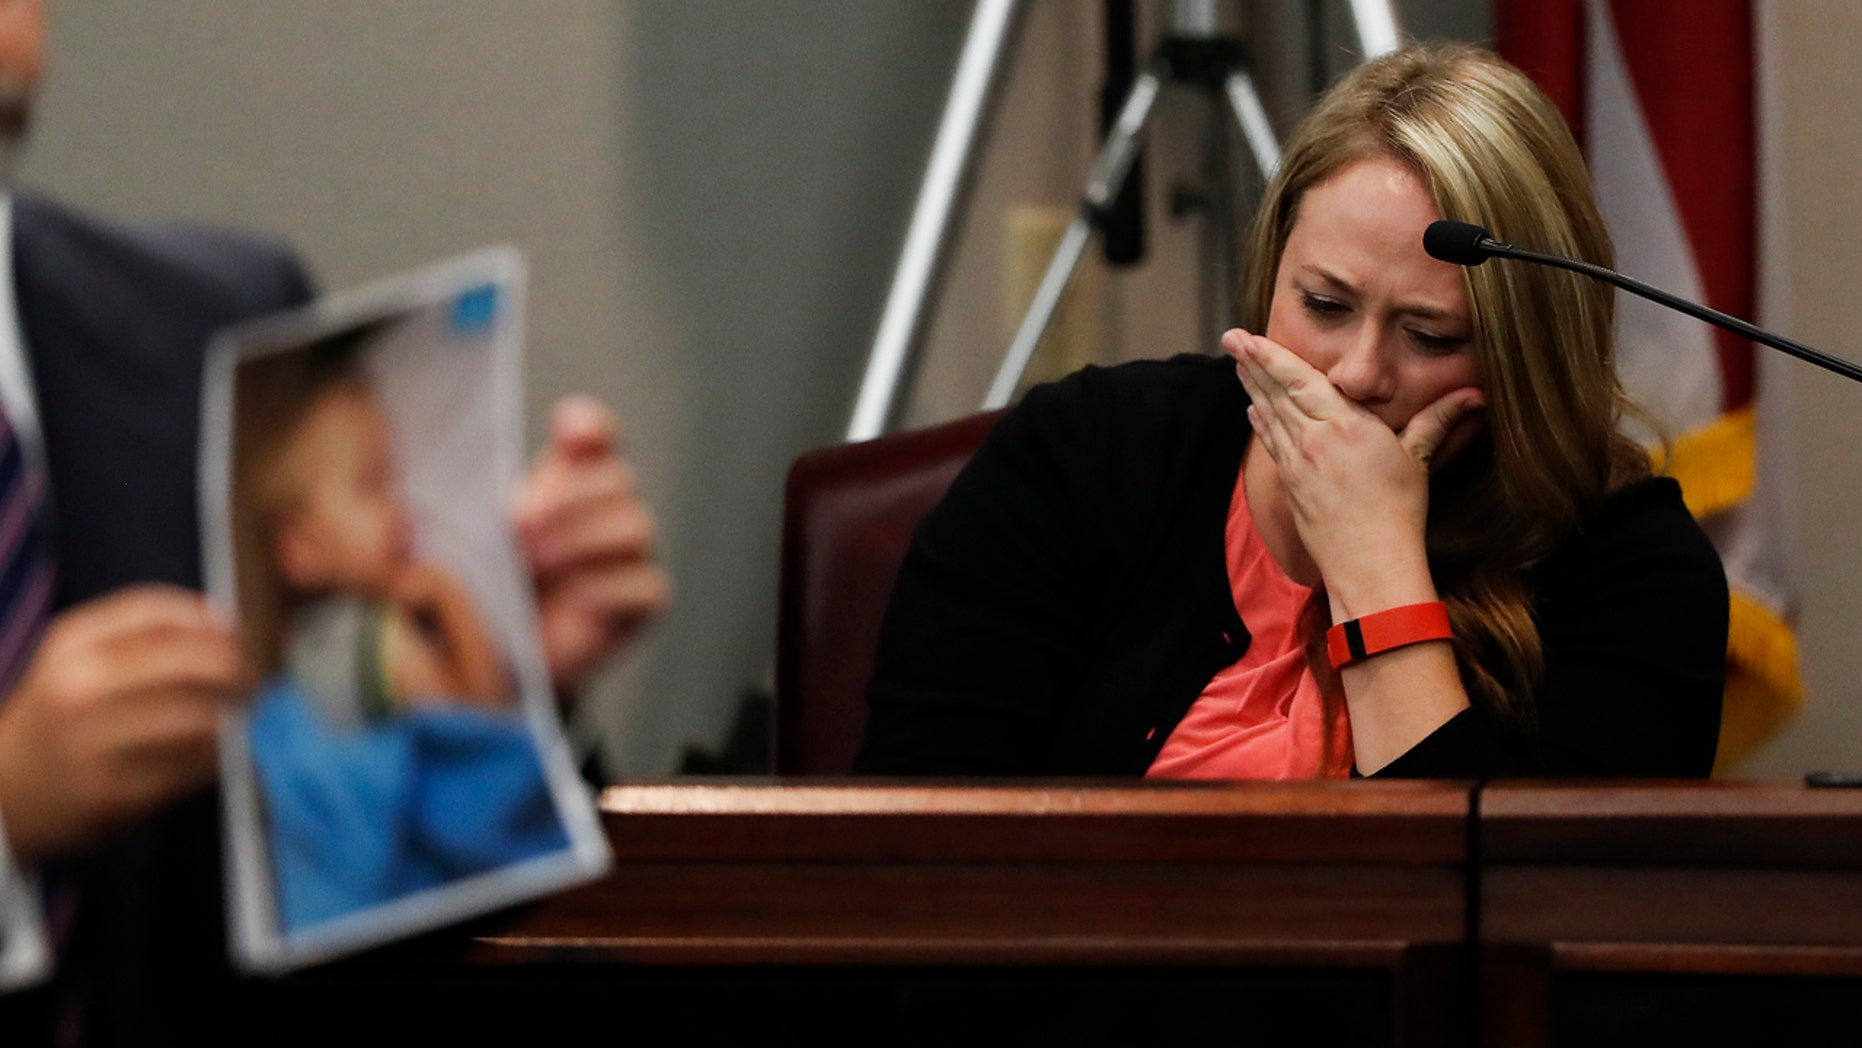 Leanna Taylor cries as an attorney shows photographs of her son Cooper to the jury during a murder trial for her ex-husband Justin Ross Harris Monday, Oct. 31, 2016, in Brunswick, Ga.